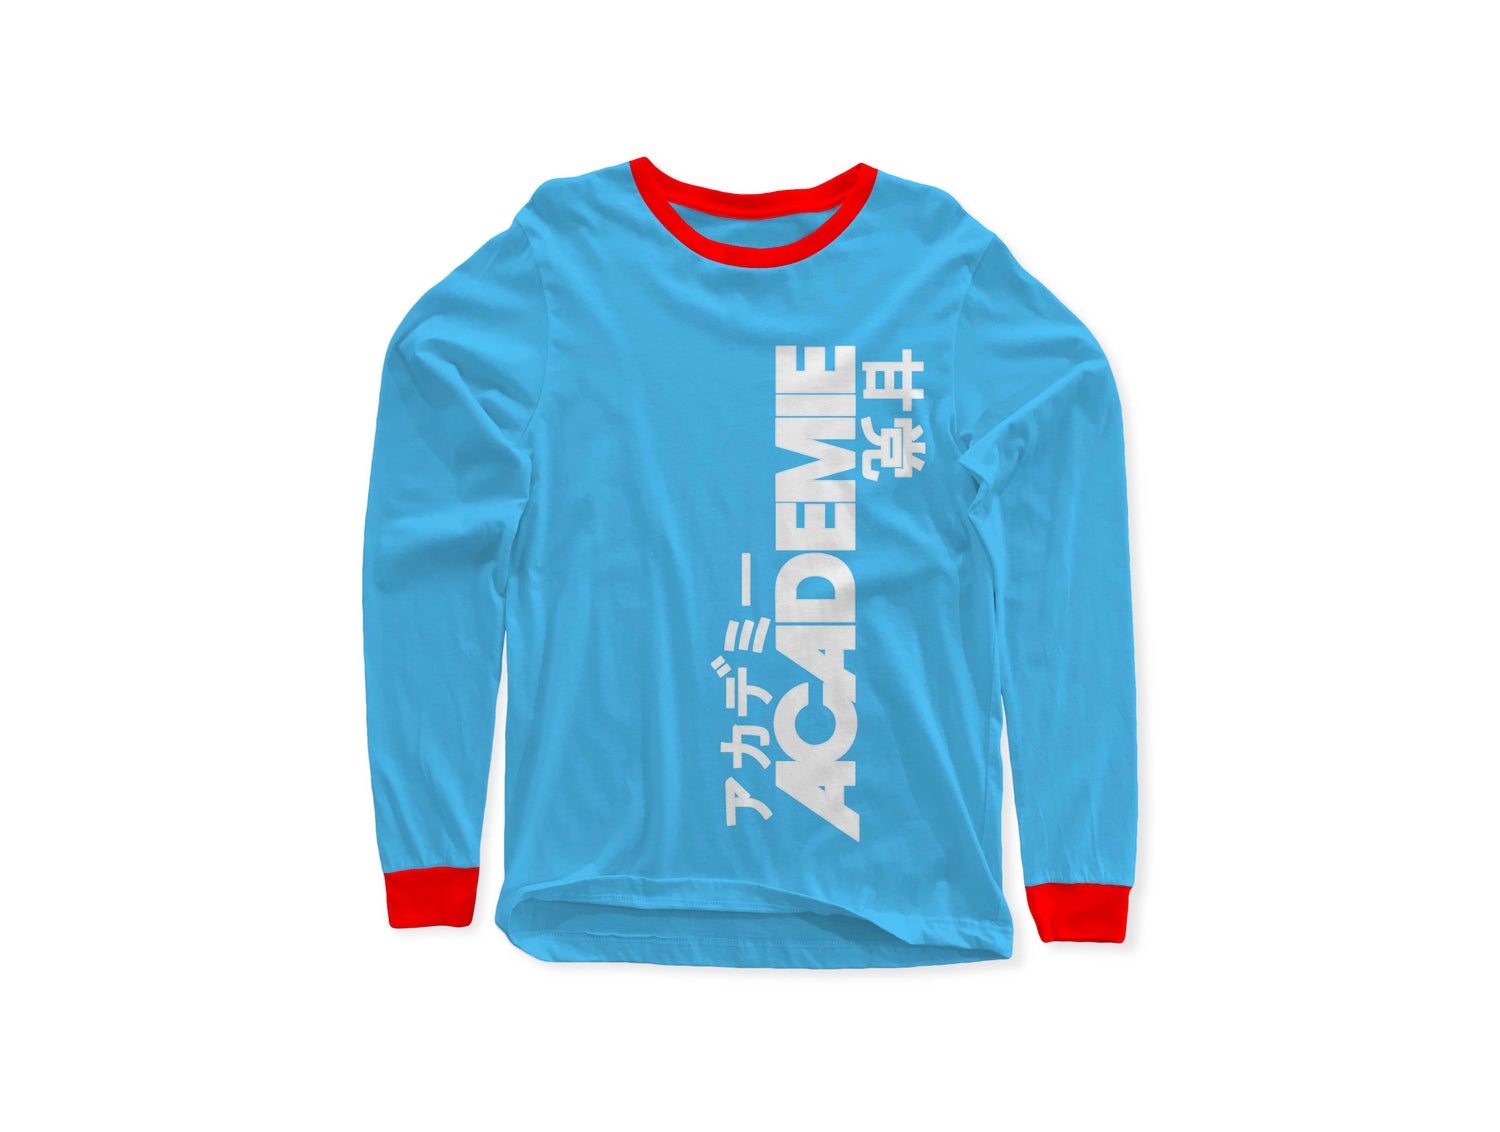 Image of ACADEMIE AMATO VERT LONG SLEEVE TEE BABY BLUE RED W/ WHITE